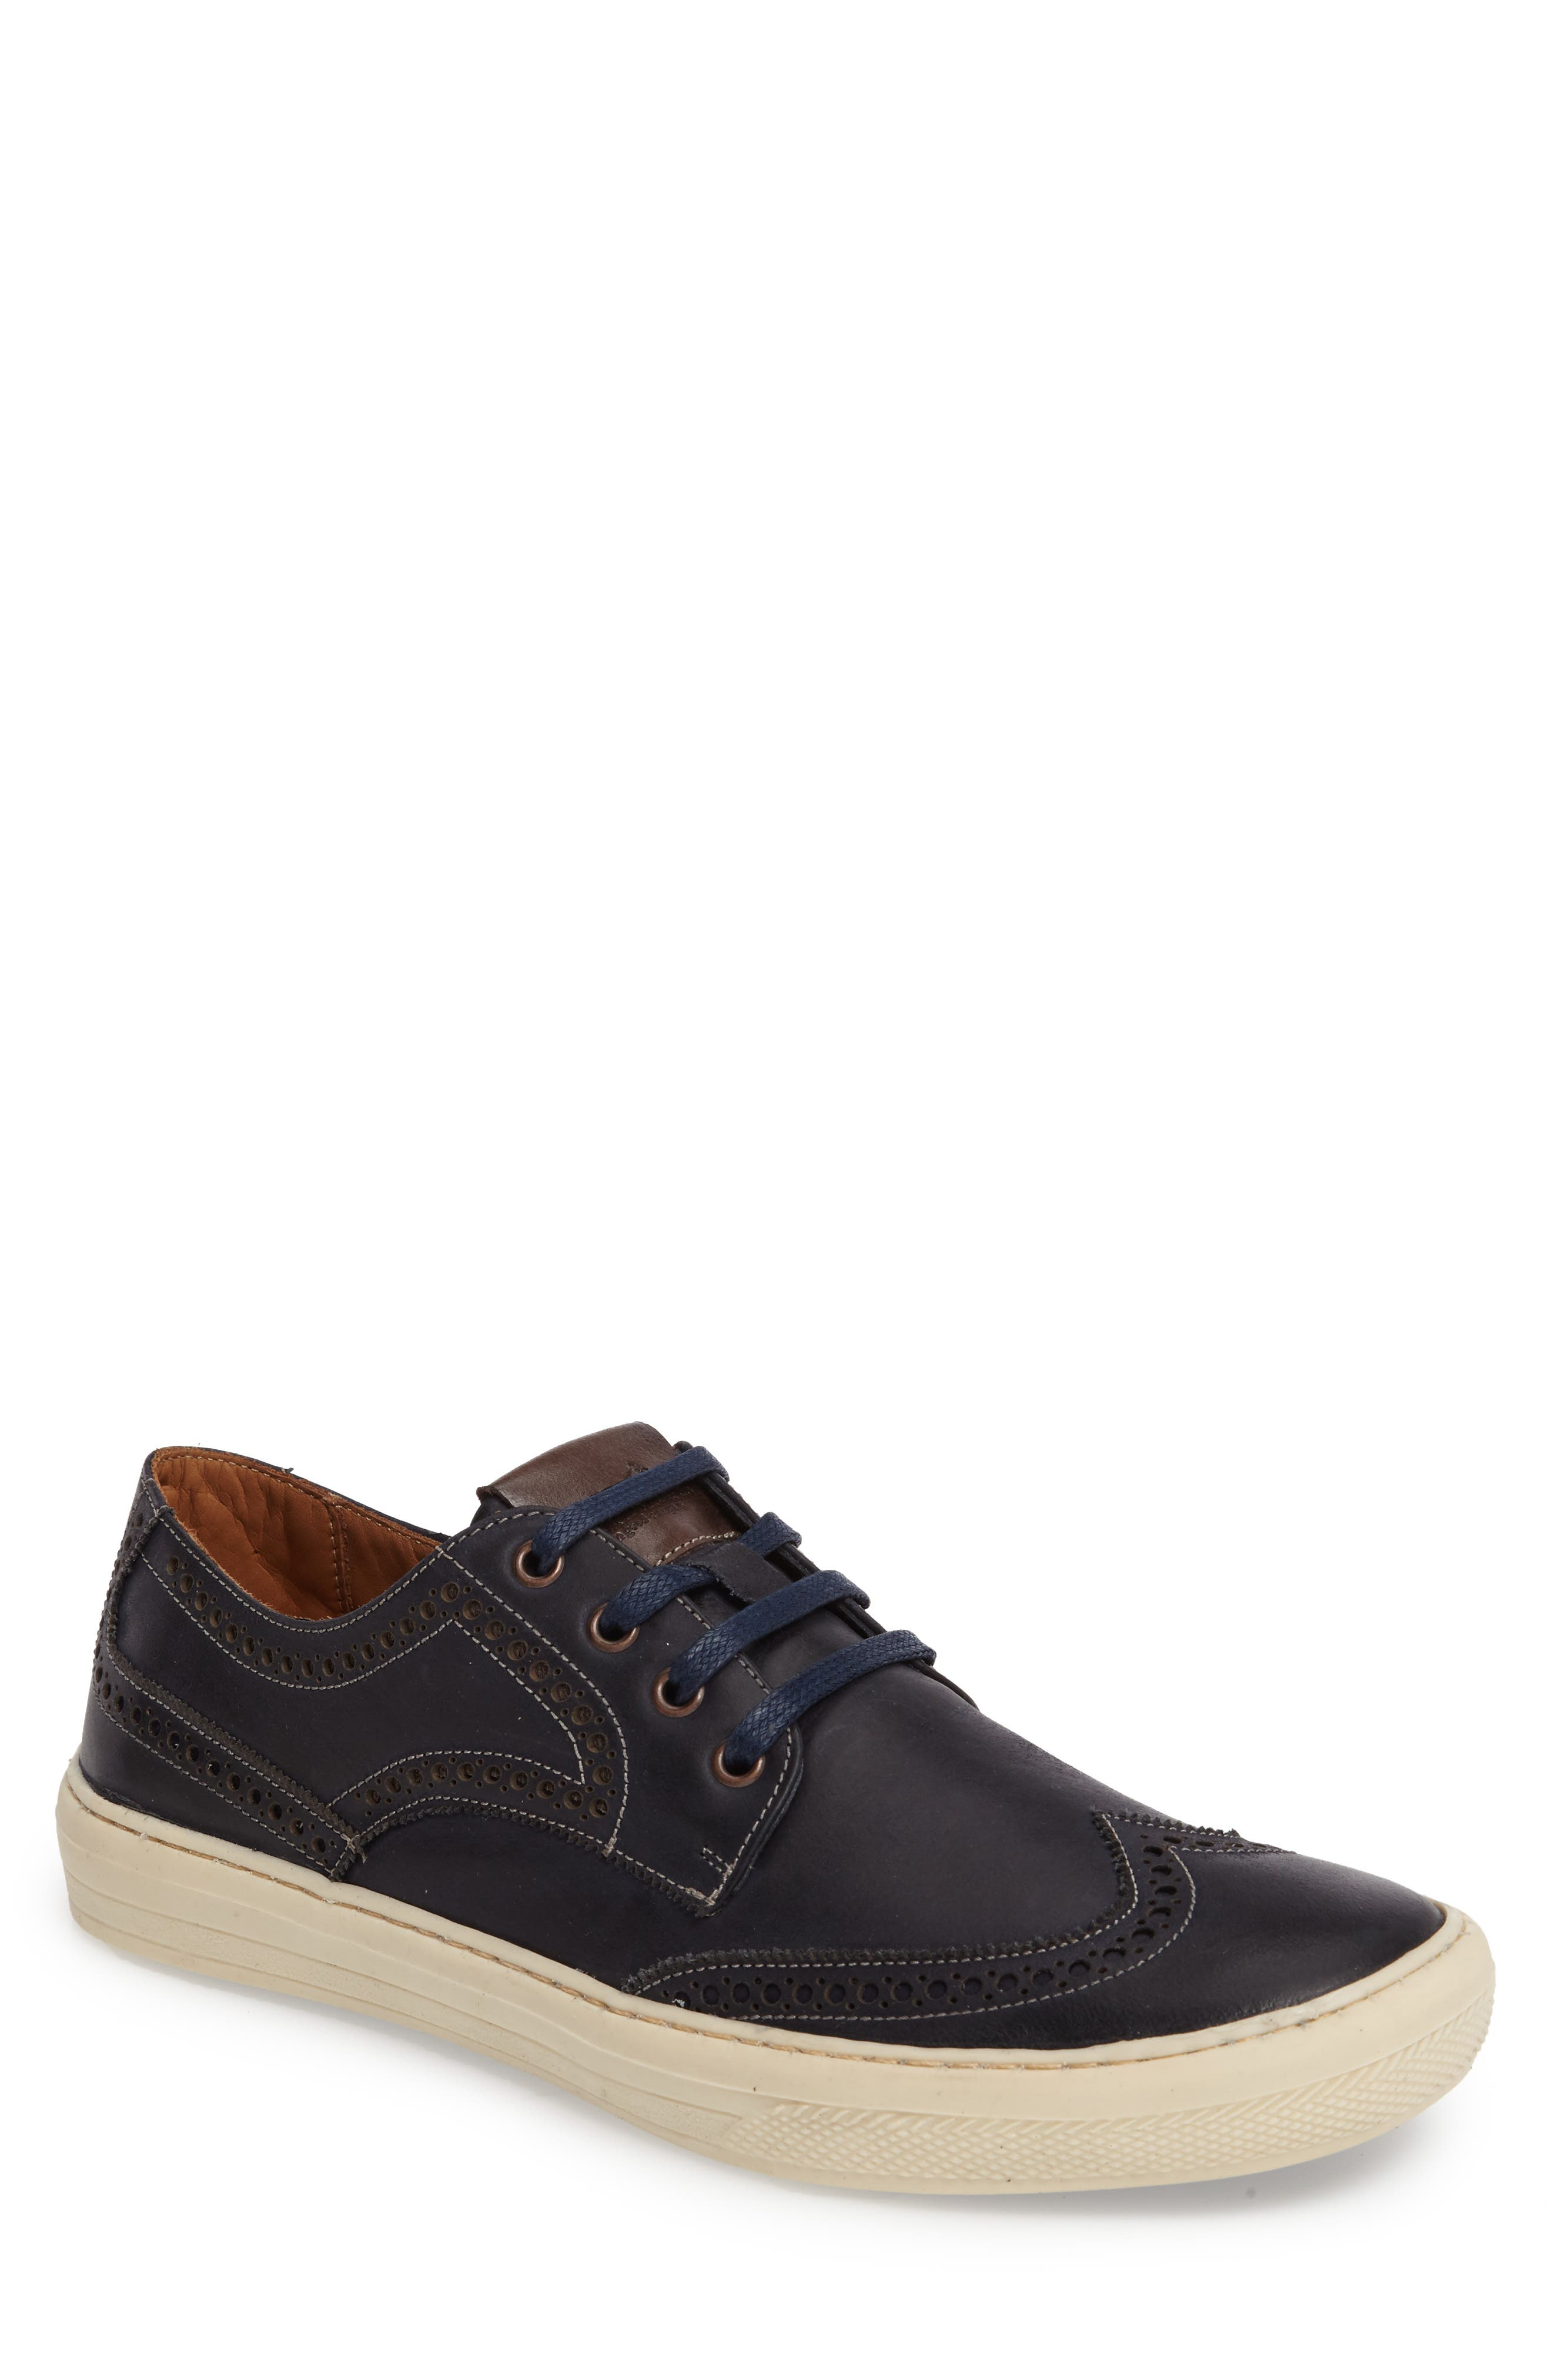 Anatomic & Co. Bariri Wingtip Sneaker (Men)